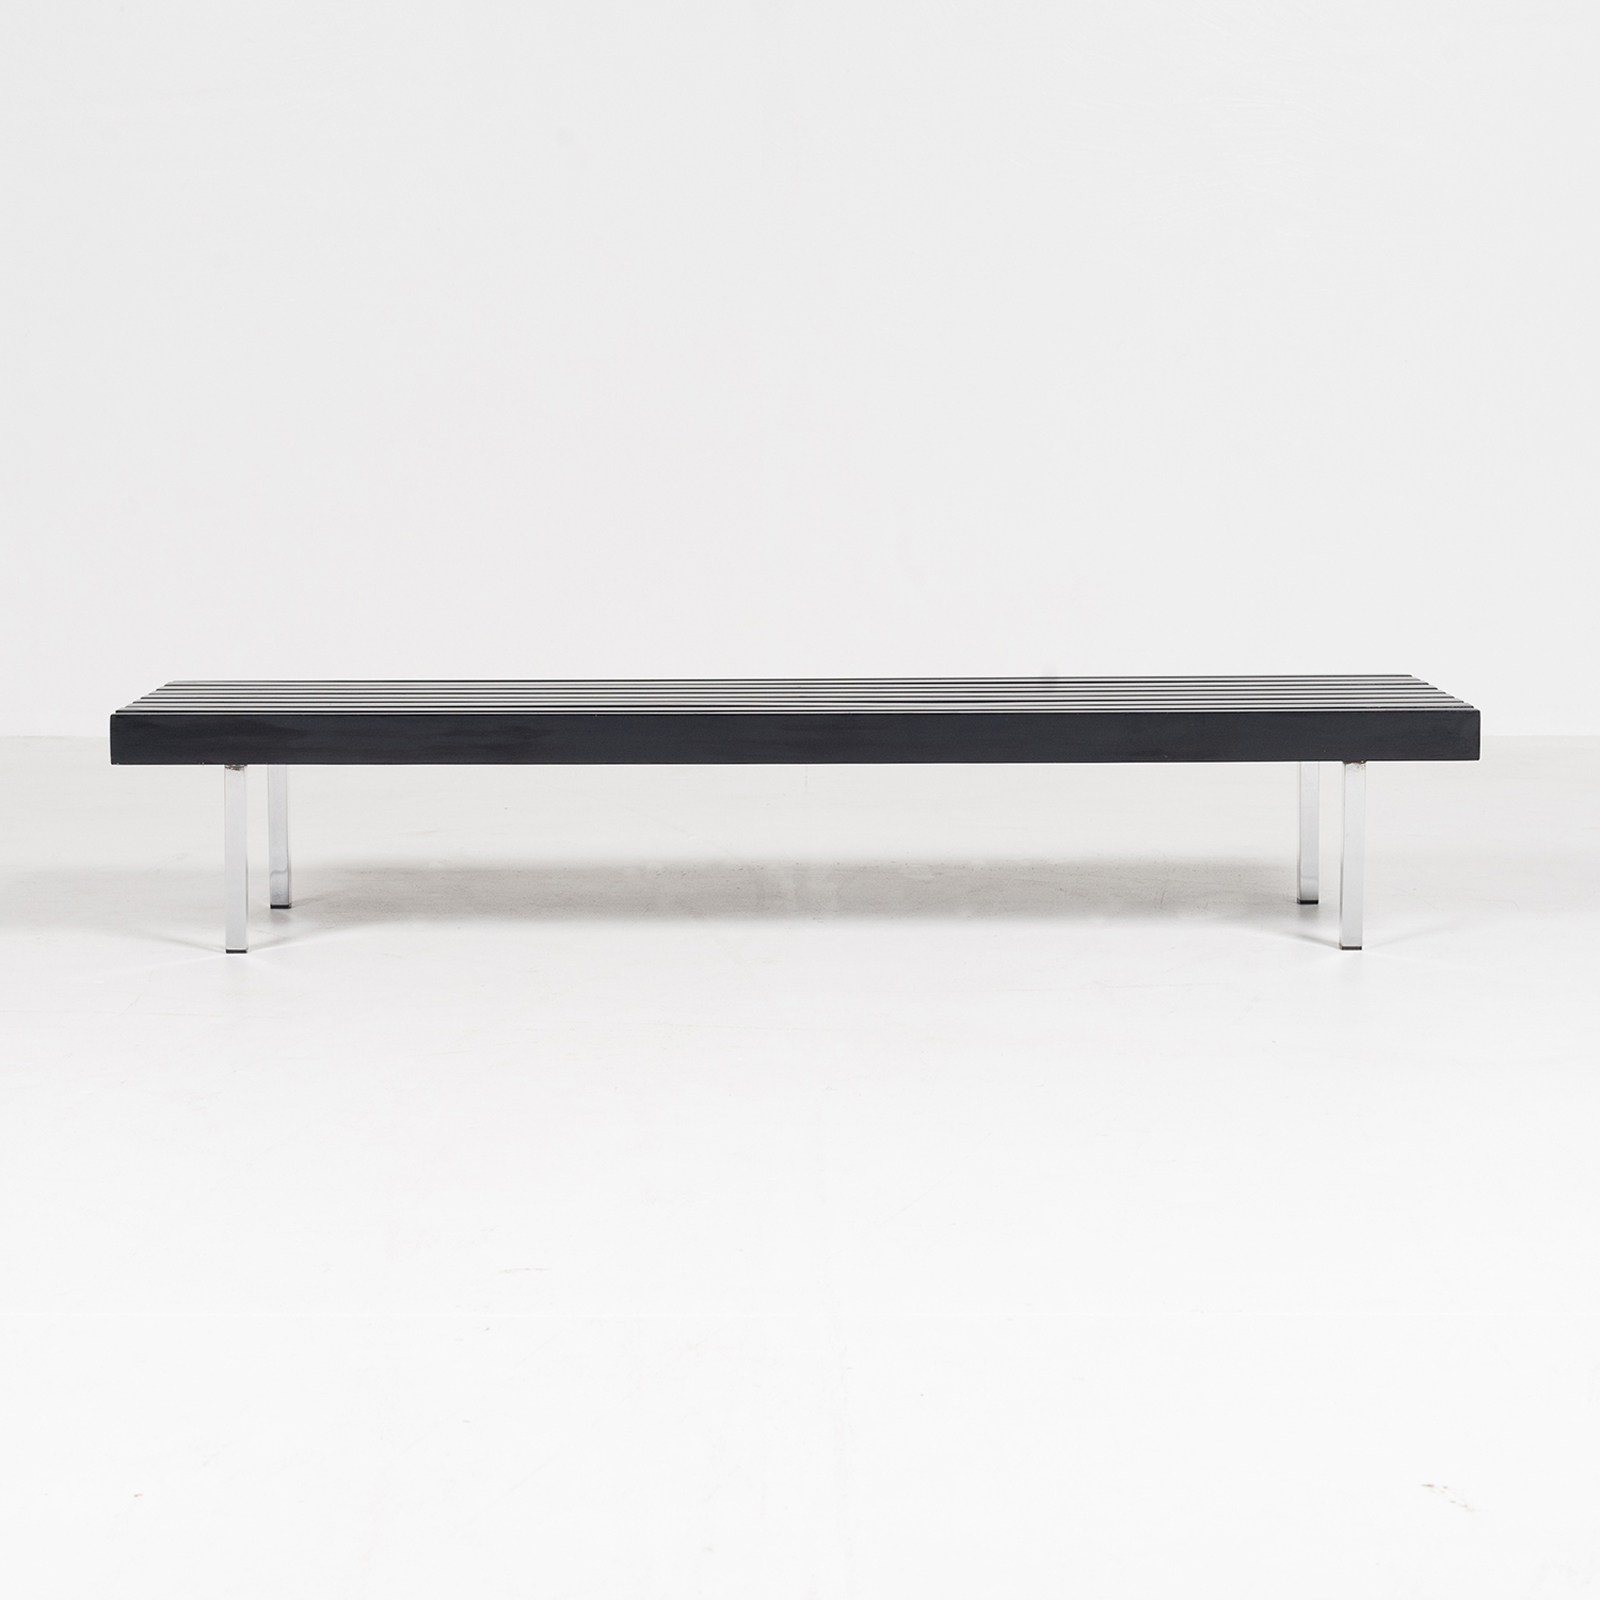 Slatted Bench By 't Spectrum, 1960s, The Netherlands2